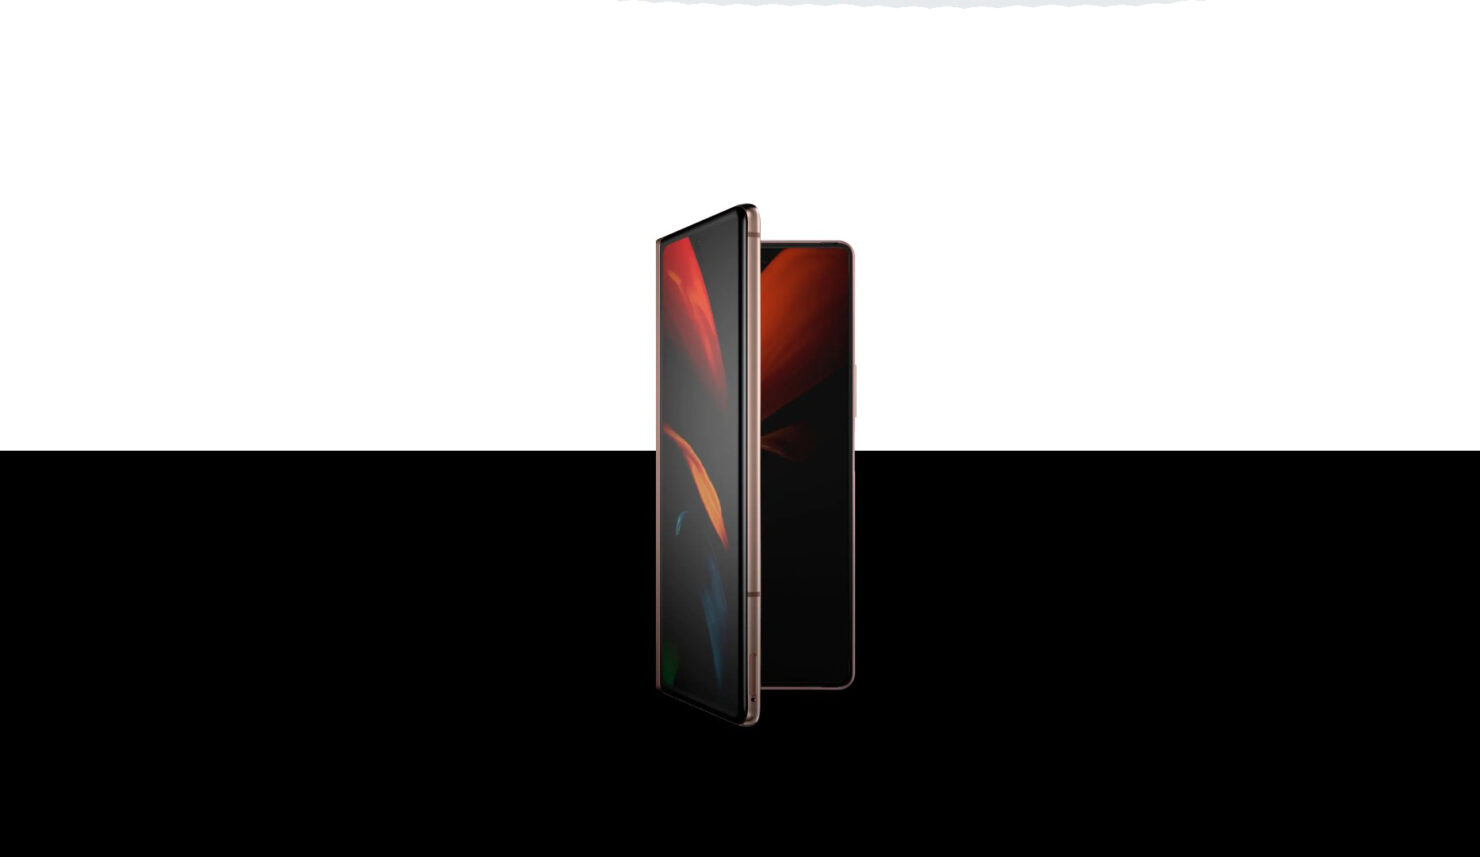 Samsung Reportedly Confirms Galaxy Z Fold 3 With S-Pen Support, Discontinuation of Galaxy Note Series